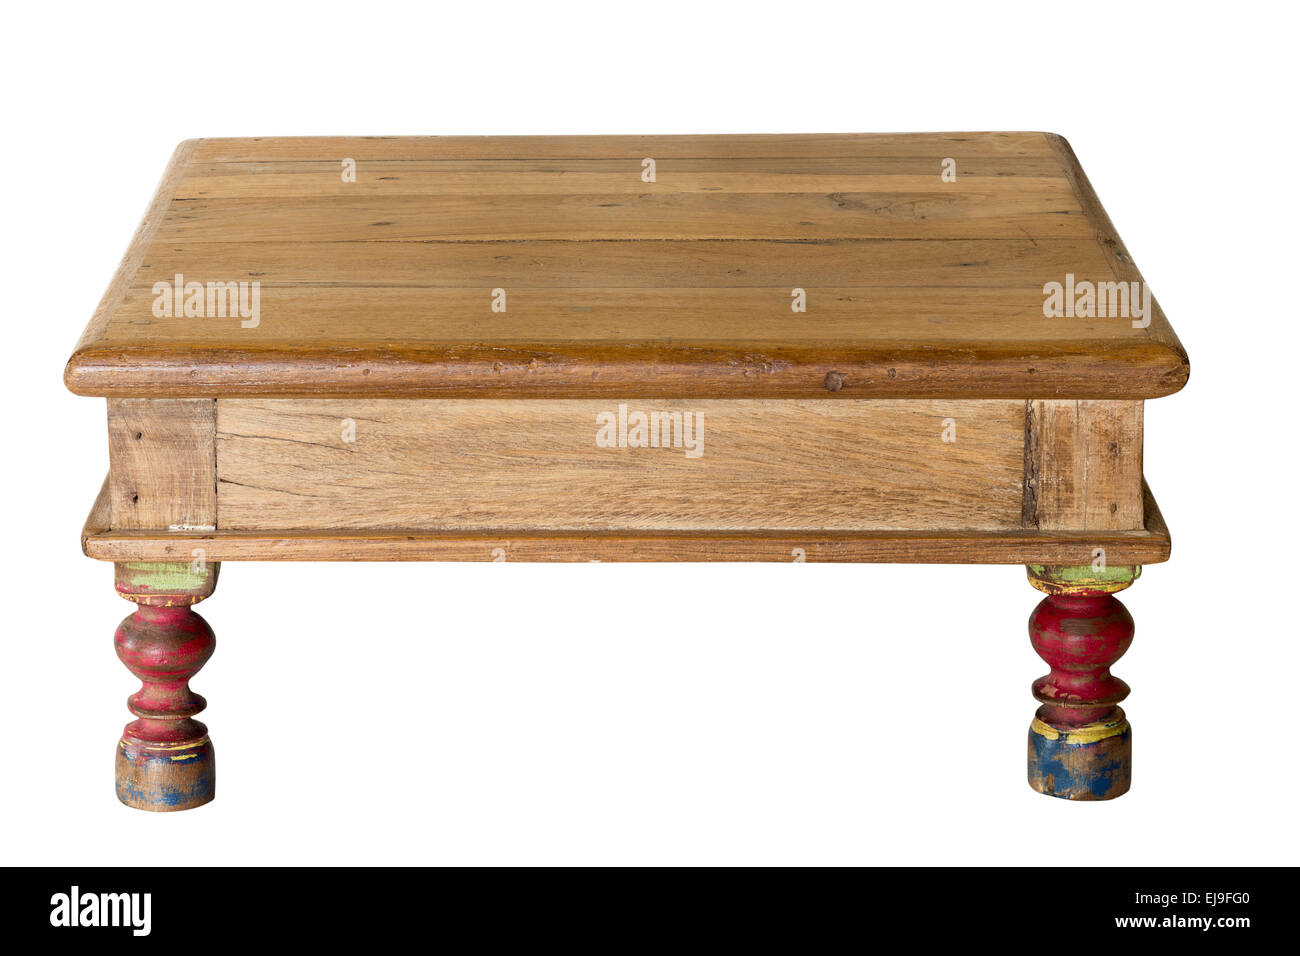 Old artisan table made from worn wood - Stock Image